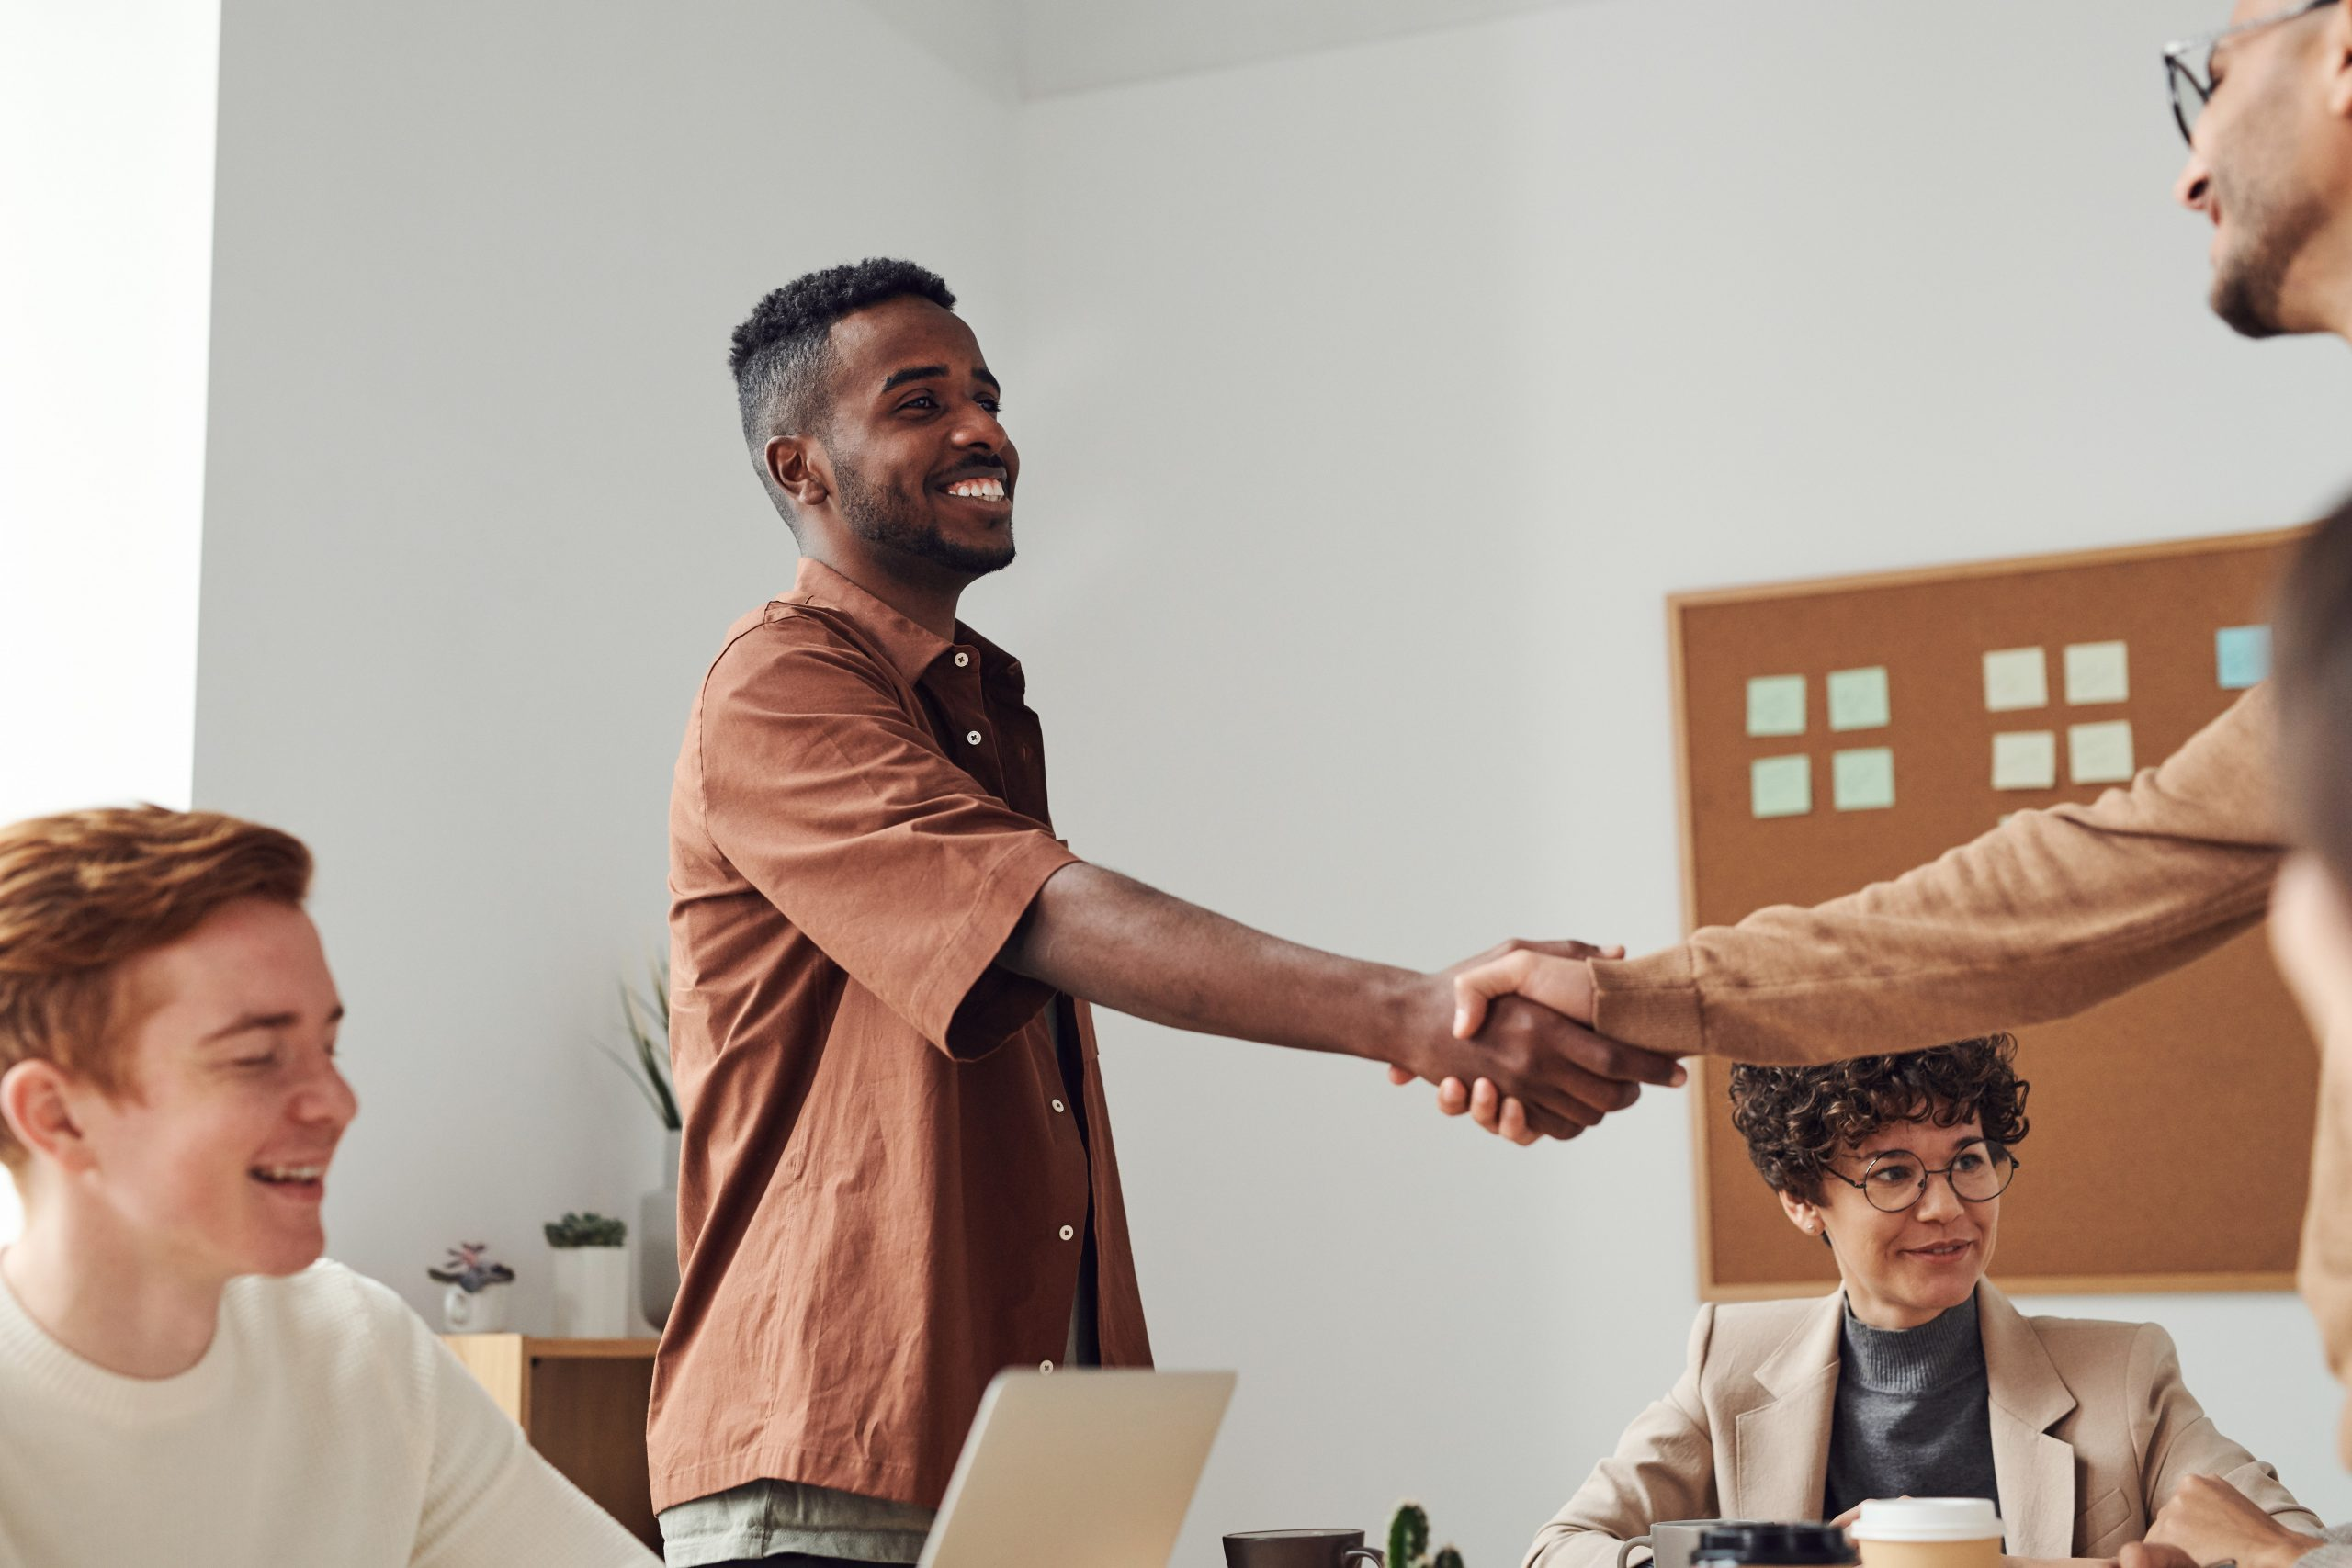 B2b business partners shaking hands, building that level of trust.